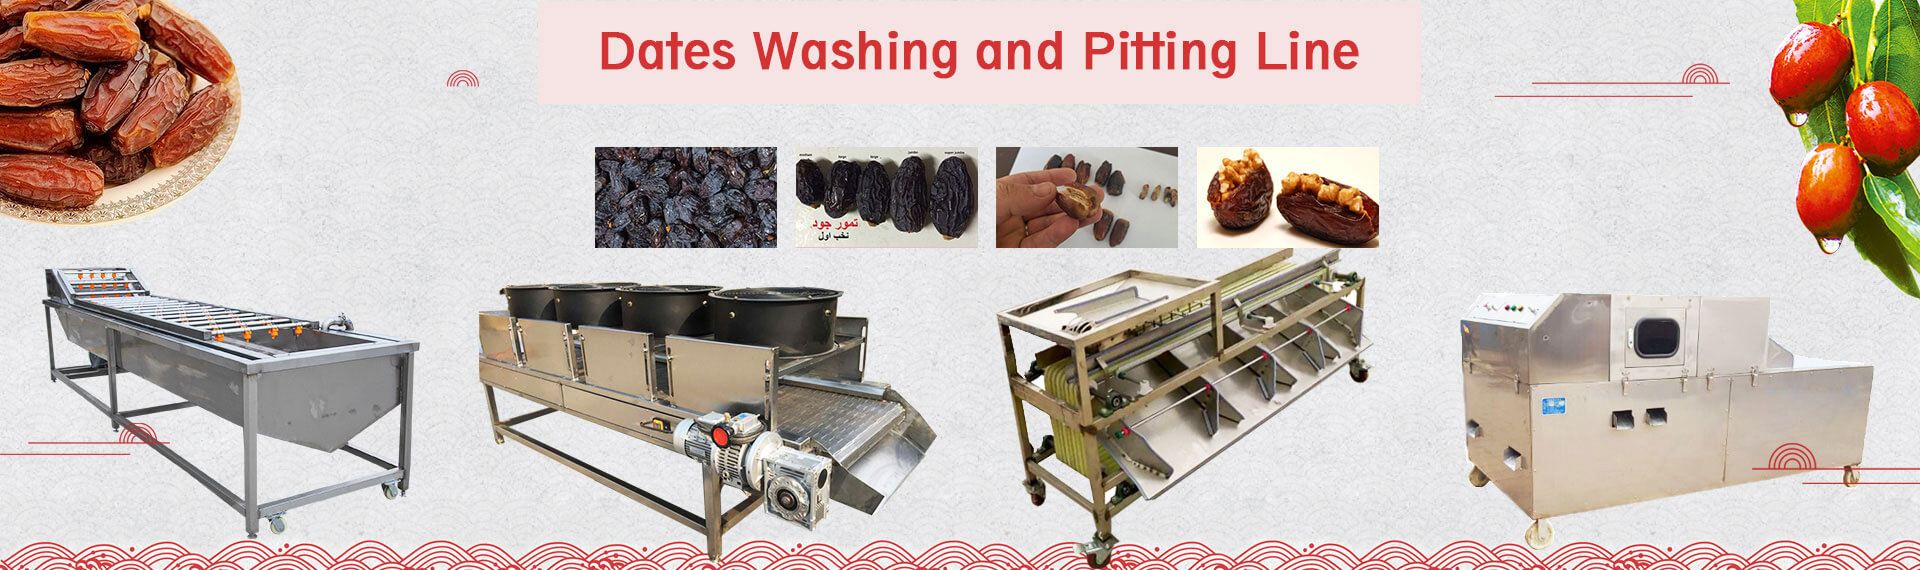 Dates Process Machines